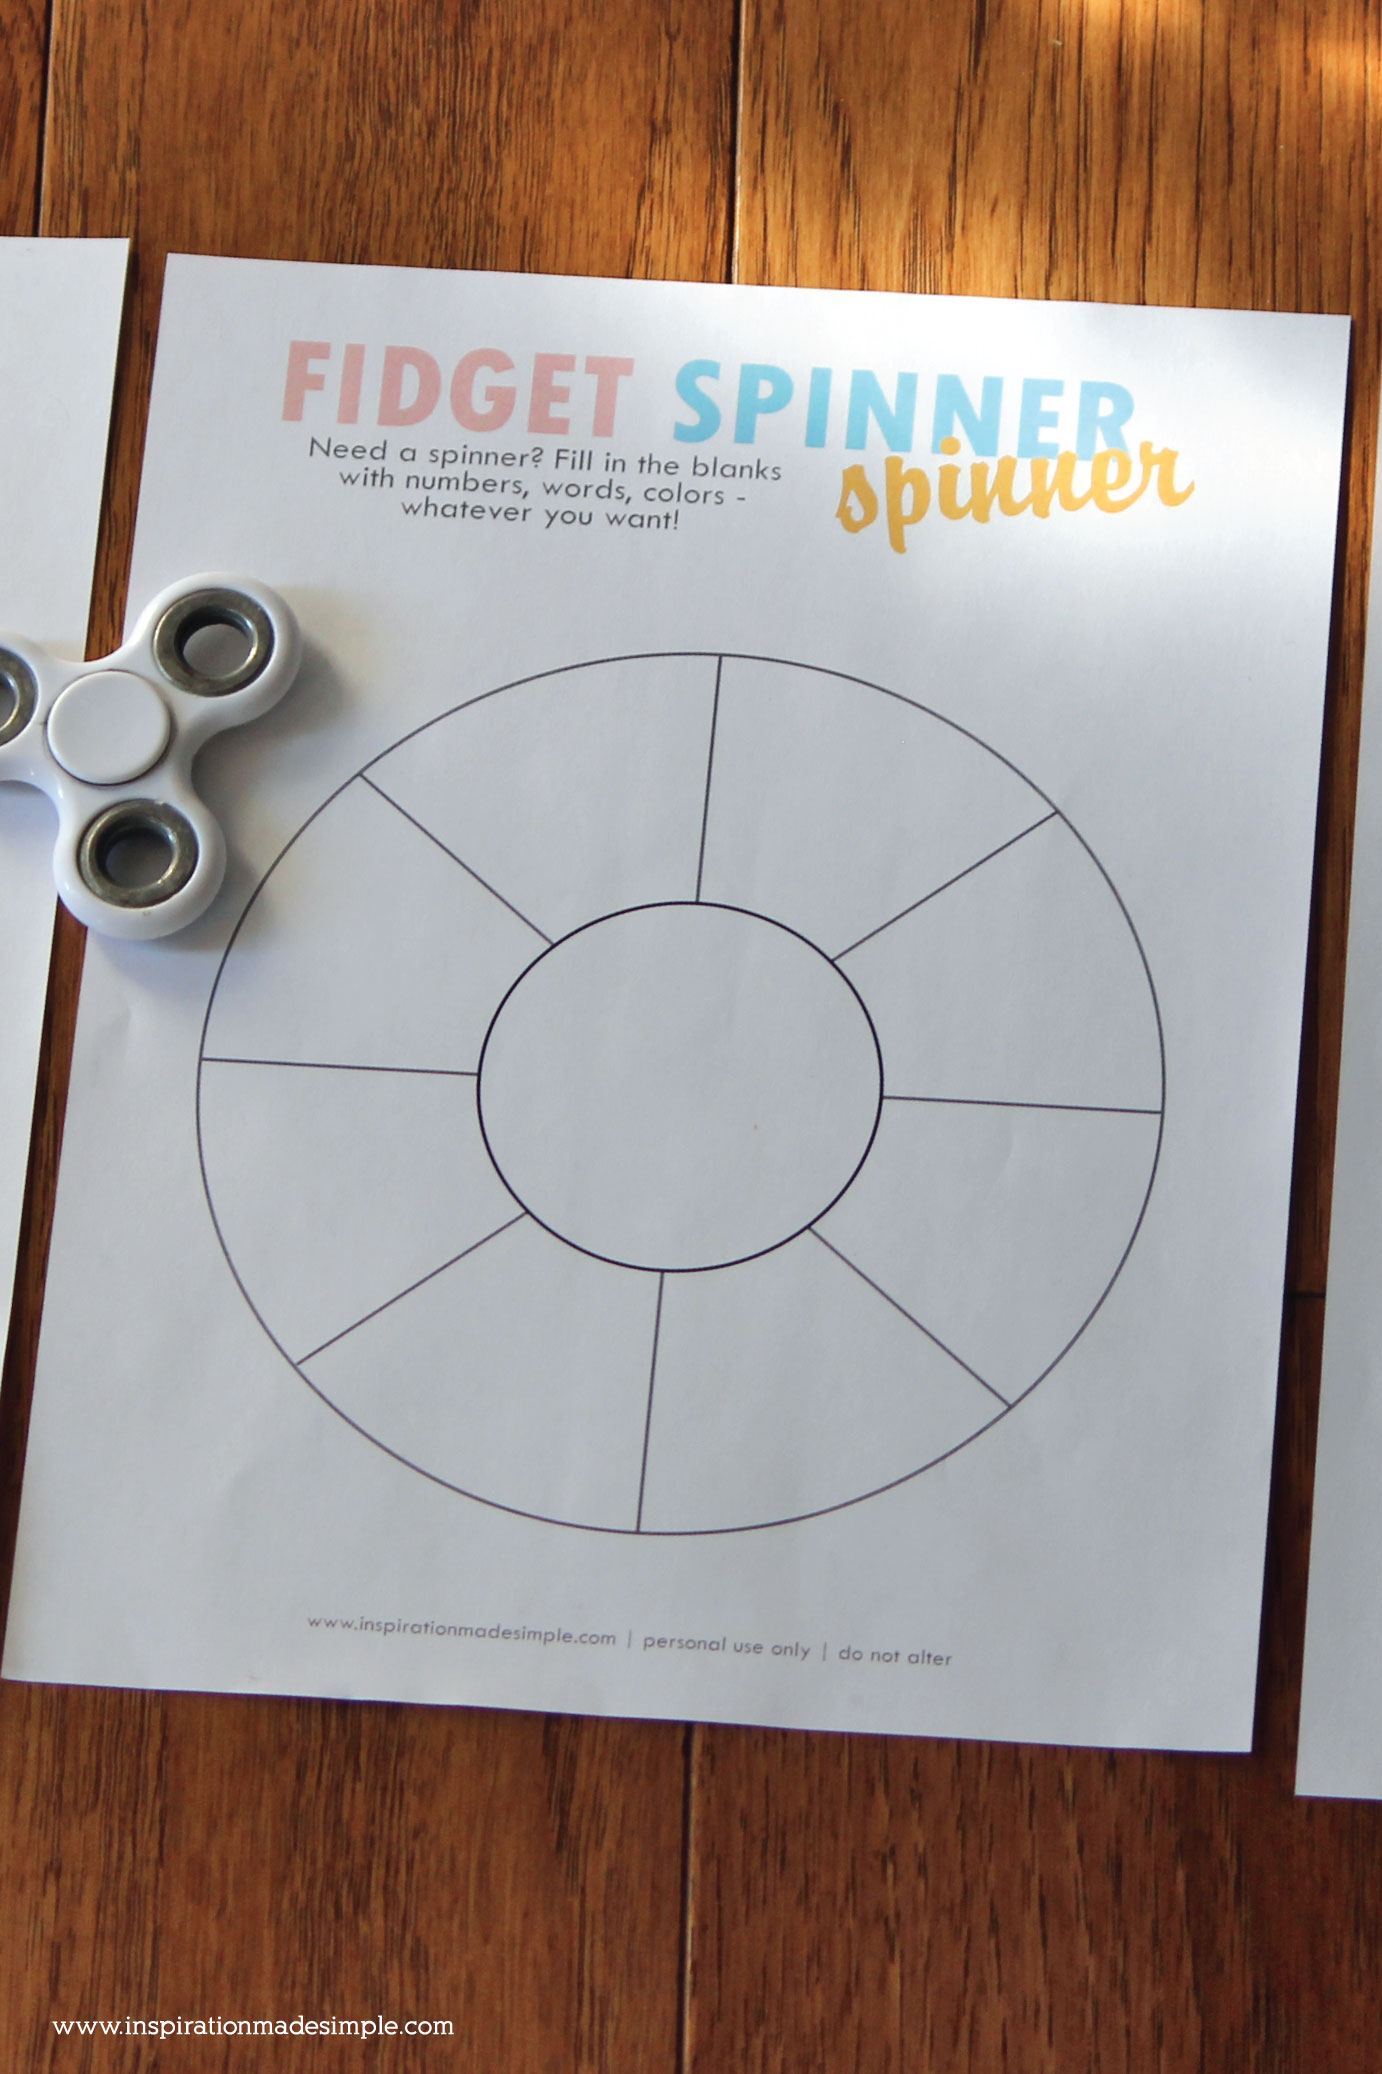 Turn your fidget spinner into a game spinner - fill the blank spots however you like and give it a spin!